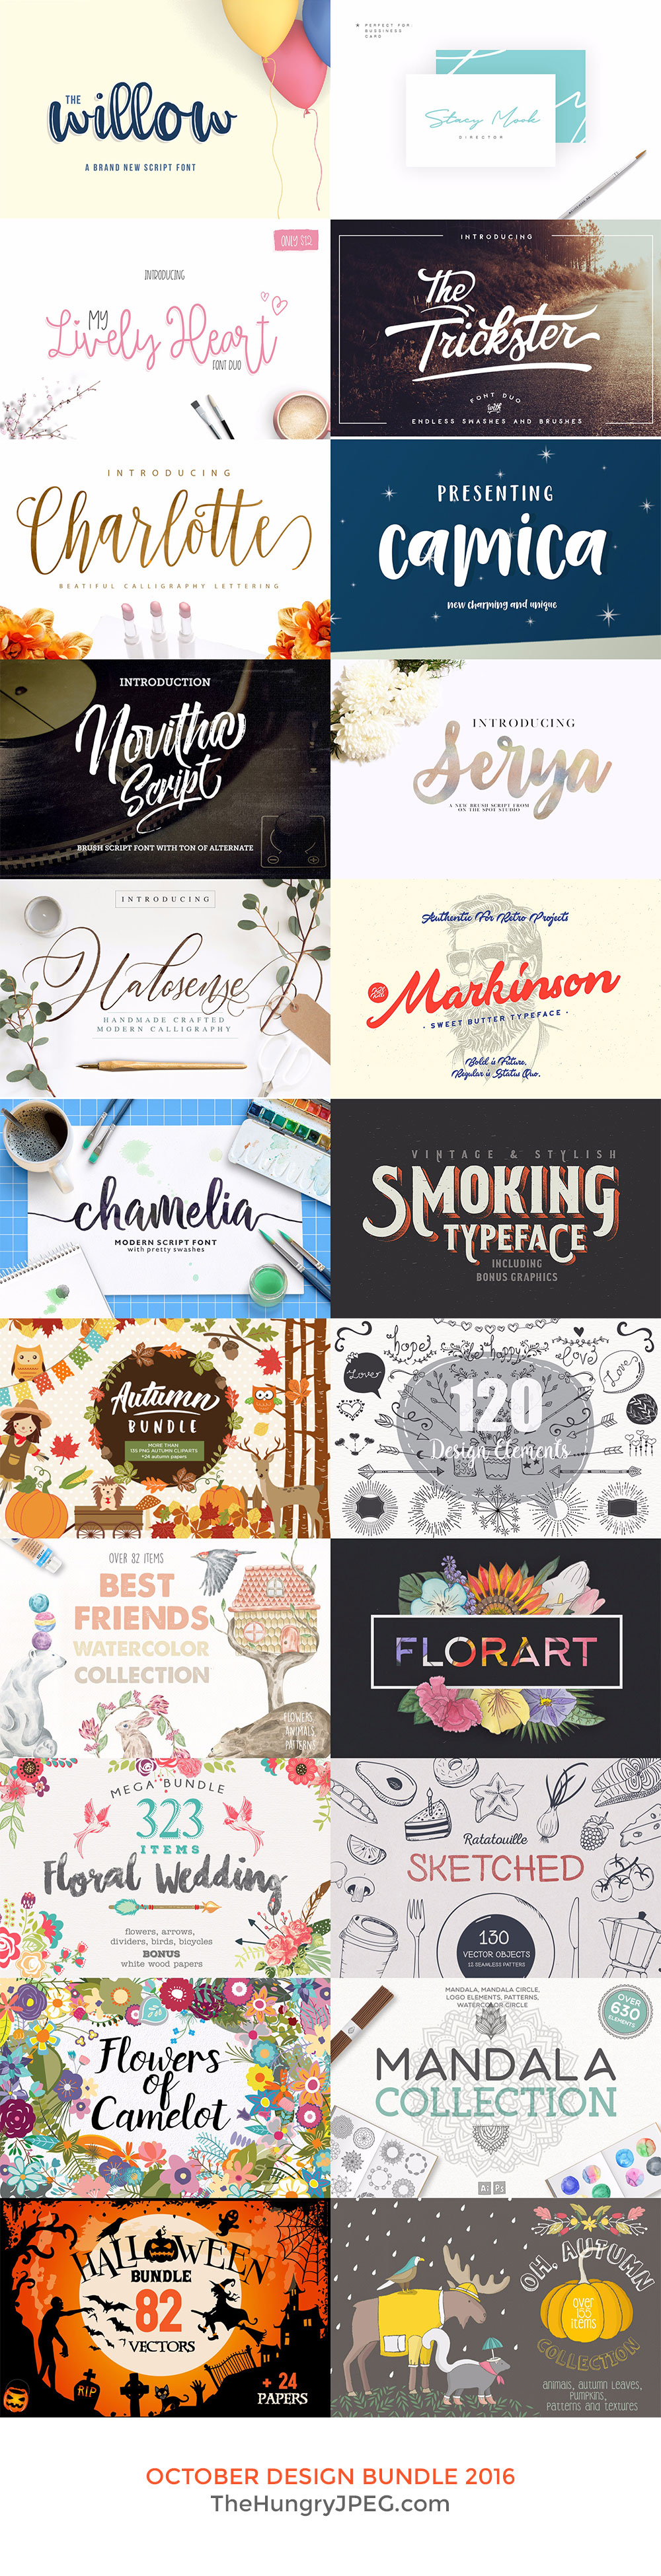 October Design Bundle